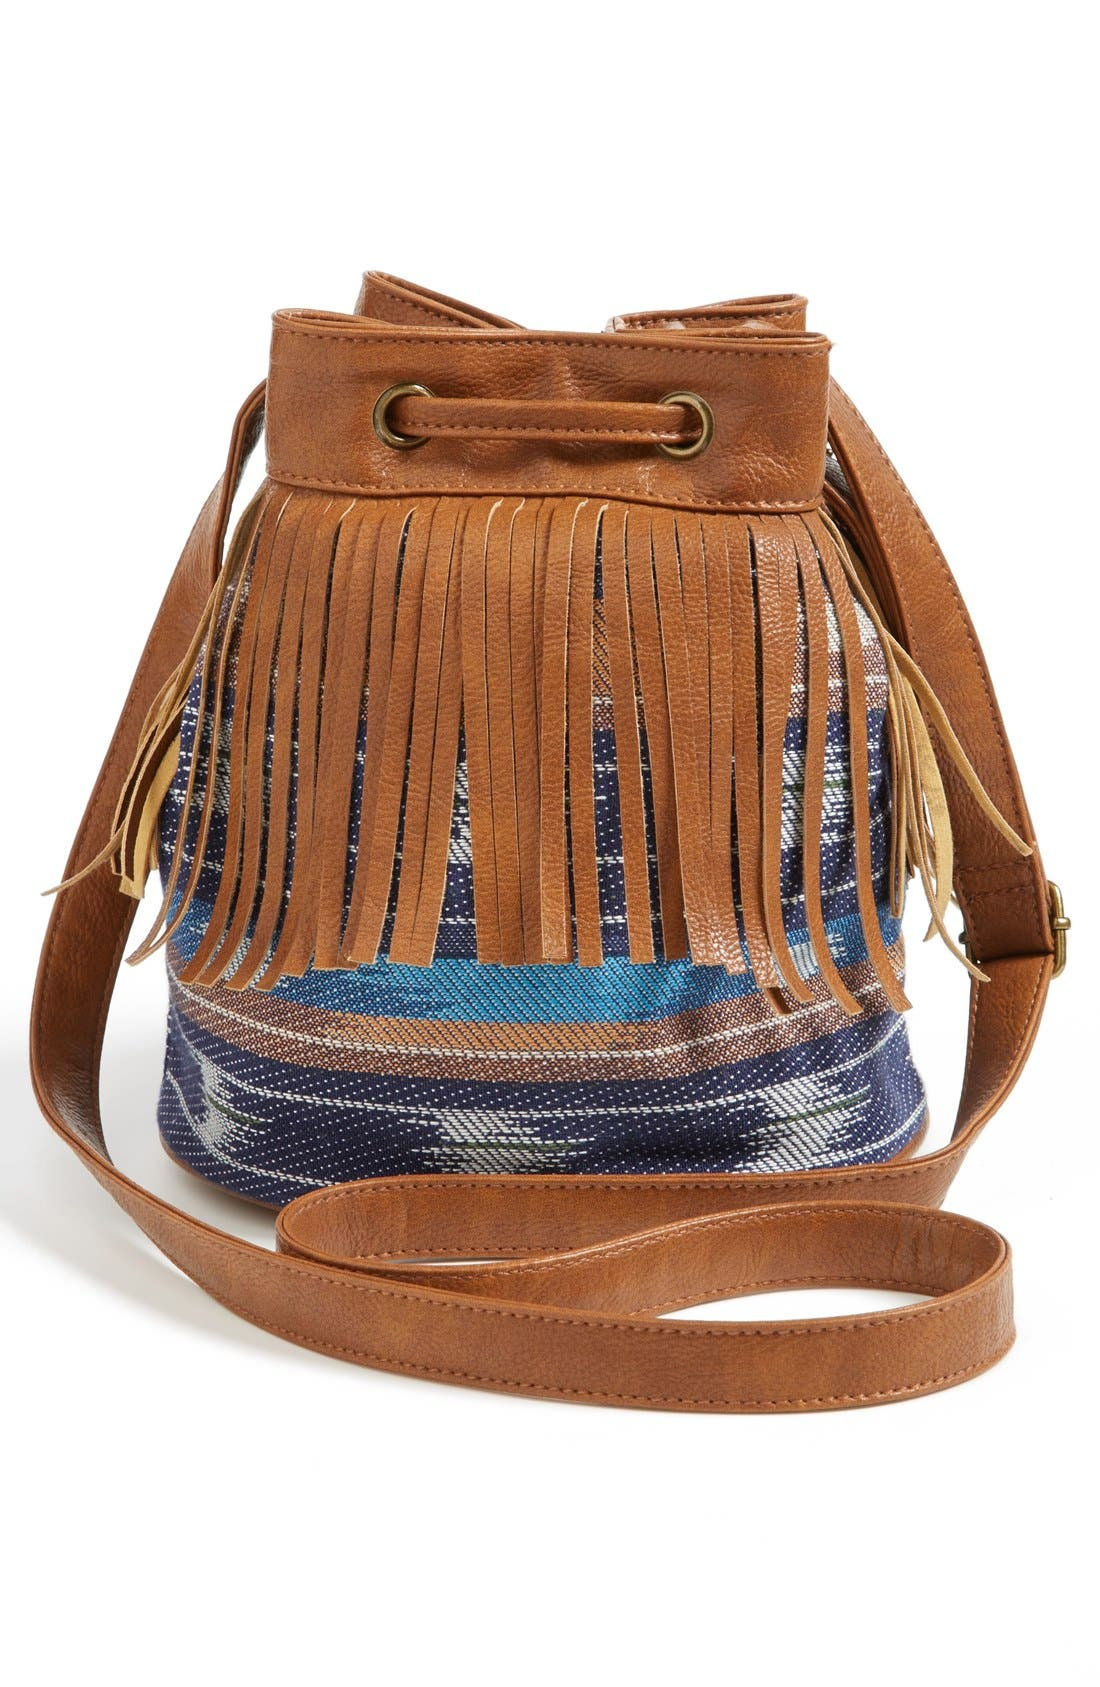 Alternate Image 3  - KENDALL + KYLIE Madden Girl Fringed Fabric Bucket Bag (Juniors)